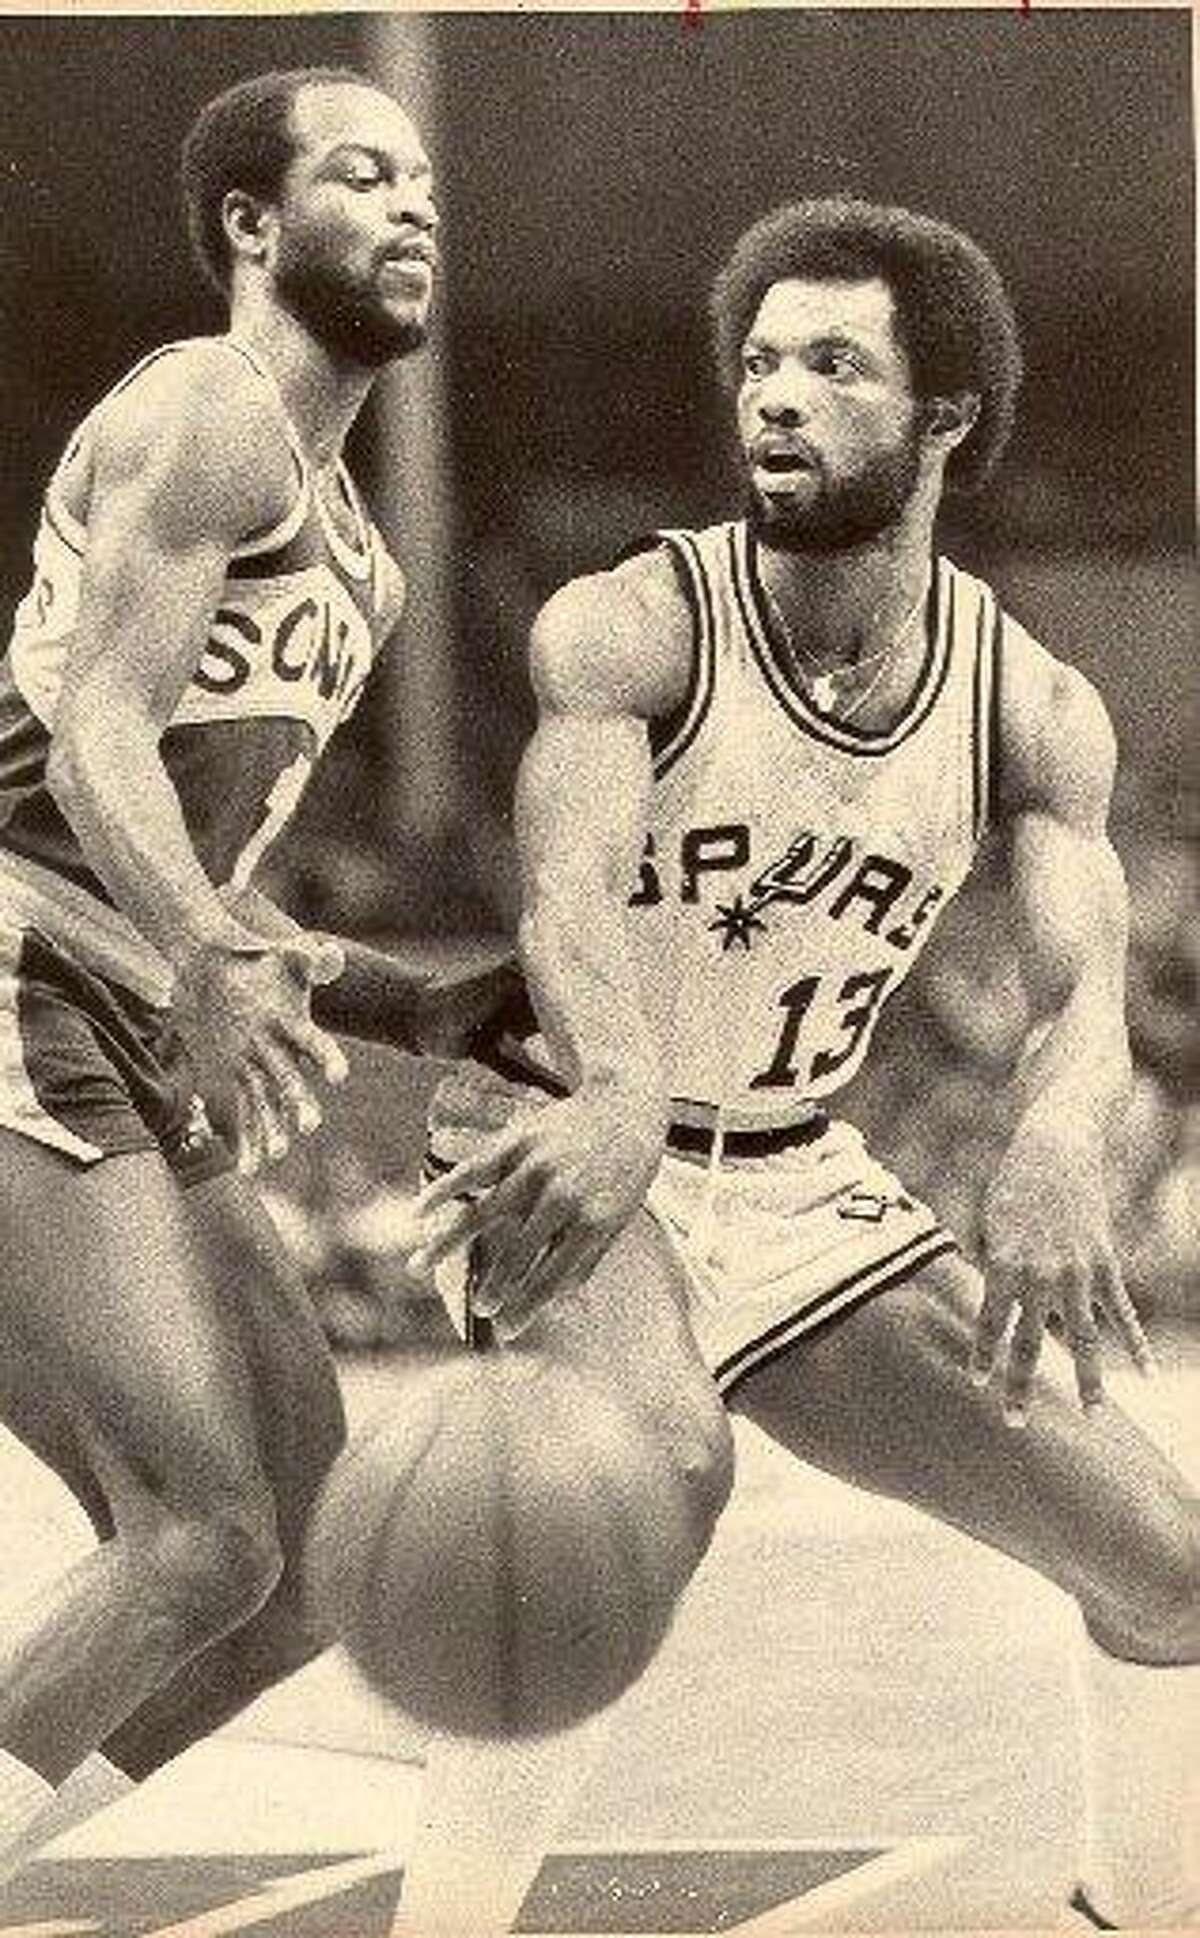 James Silas - Traded to the Cleveland Cavaliers in 1981 for a second round draft pick and cash.